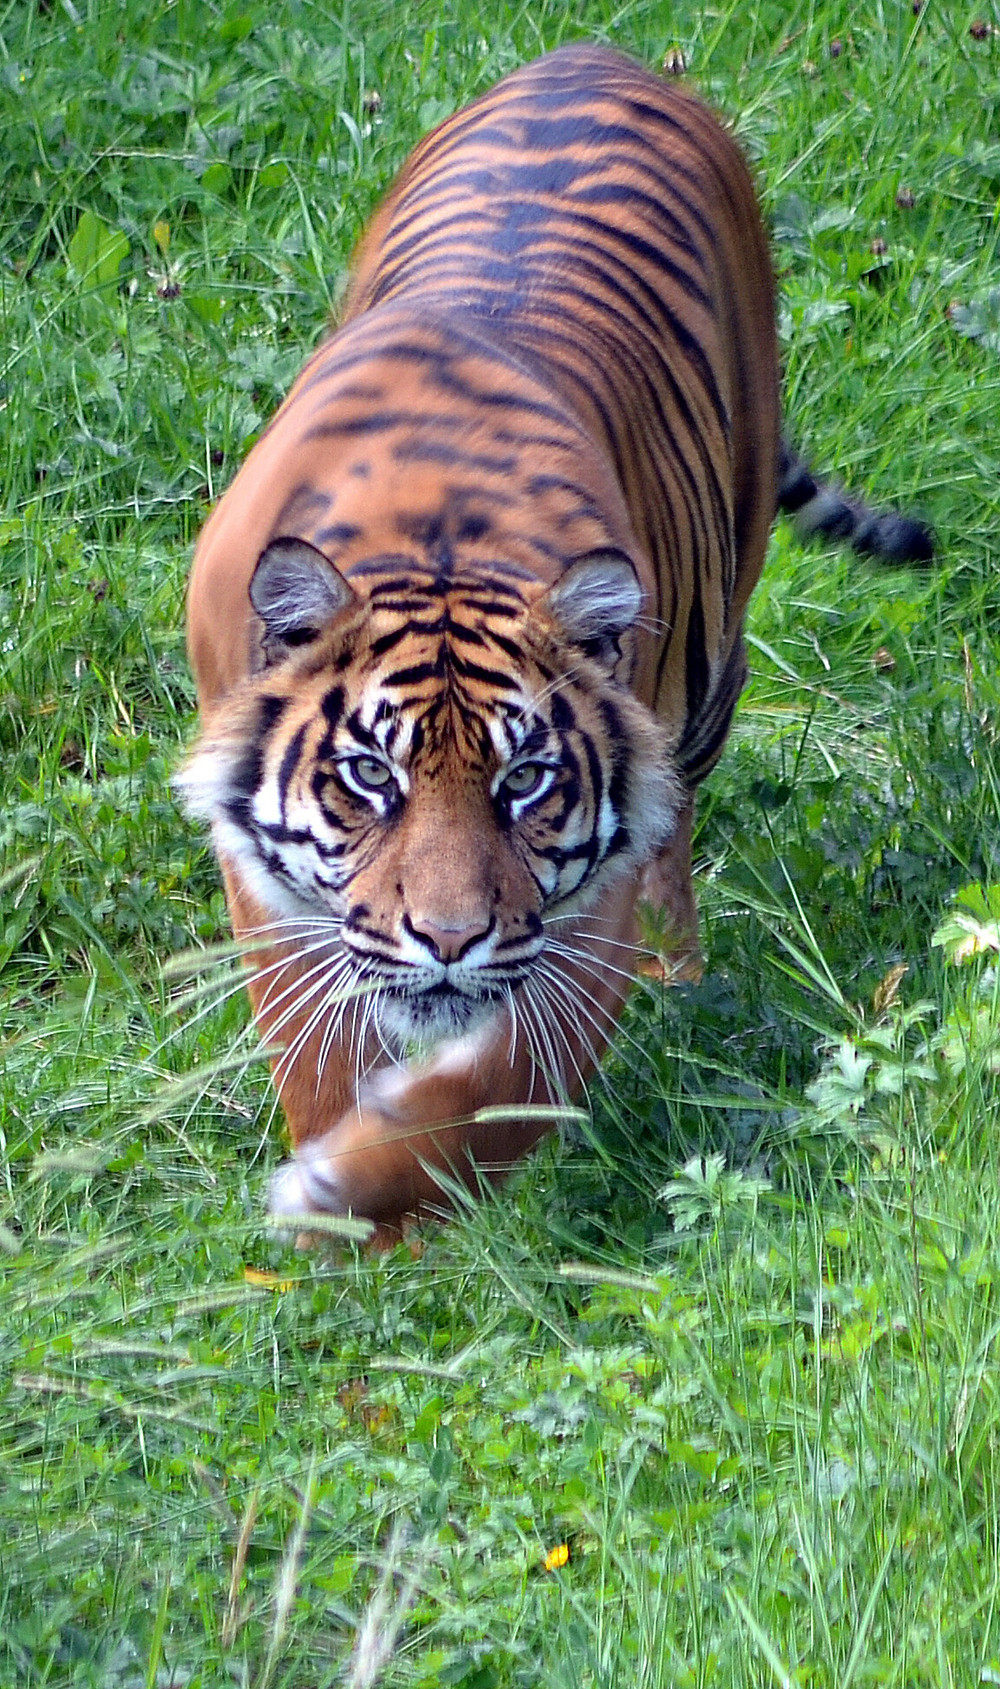 With glycogen, our bodies remain always ready to sprint away from a tiger or fight off an attacker in a true emergency.